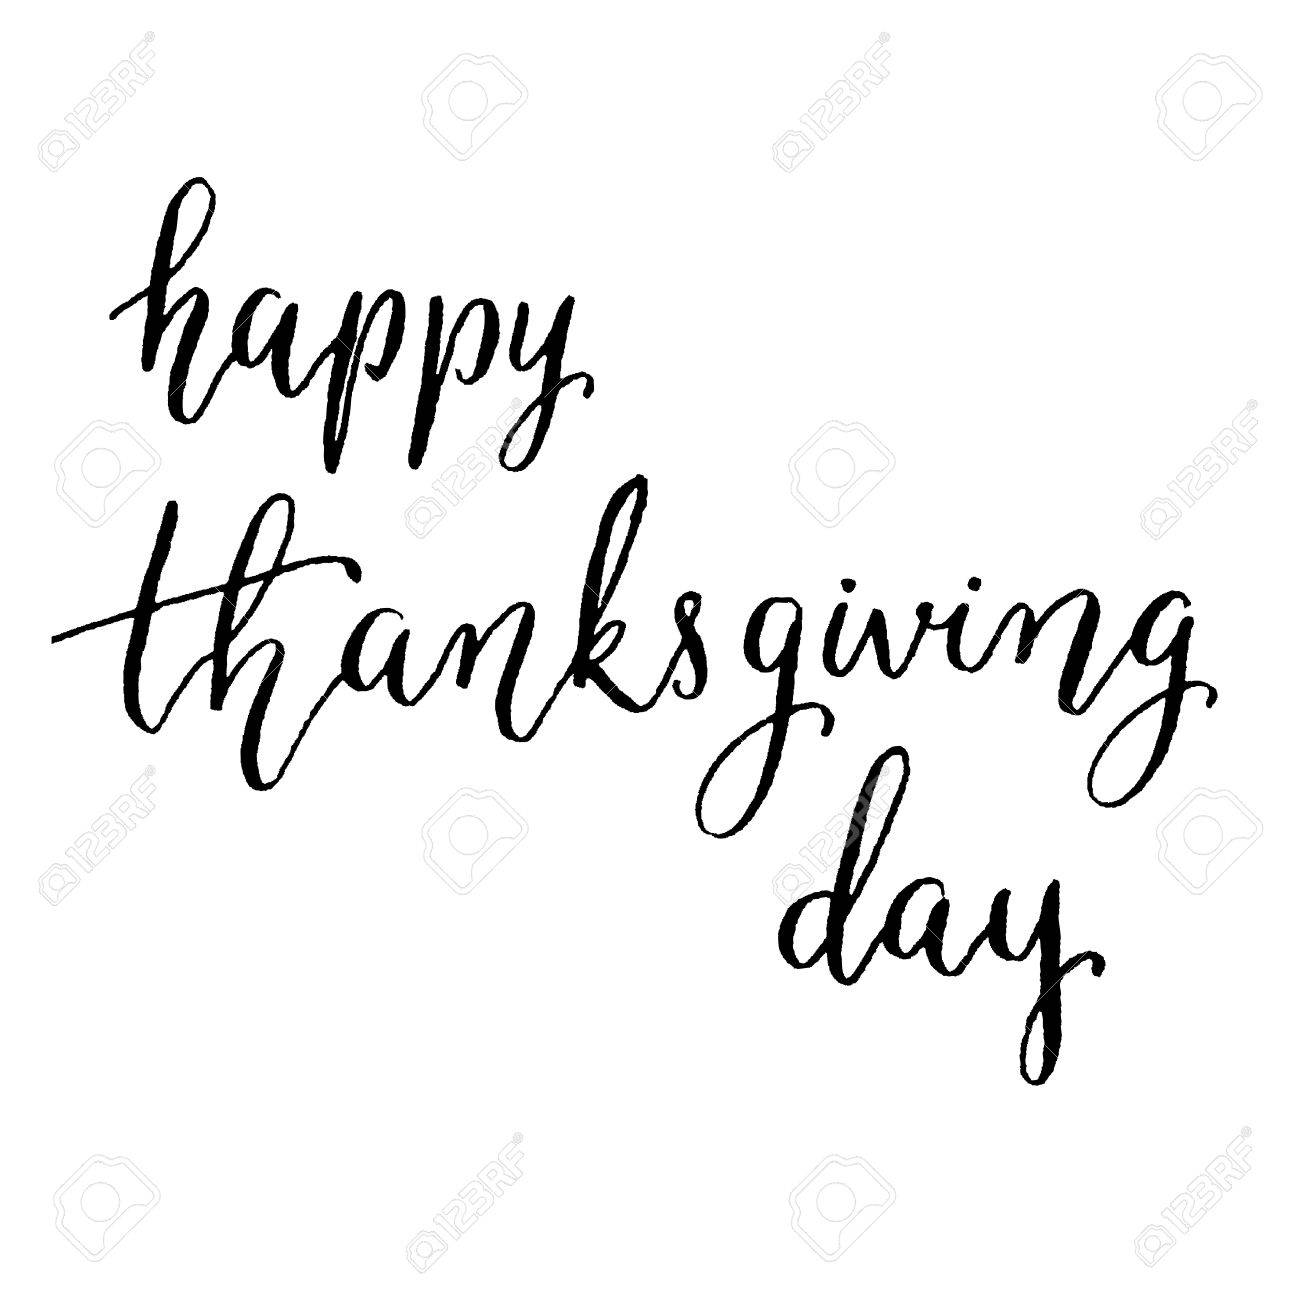 Happy Thanksgiving Day Hand Lettering Vector Modern Calligraphy Pen And Ink Stock